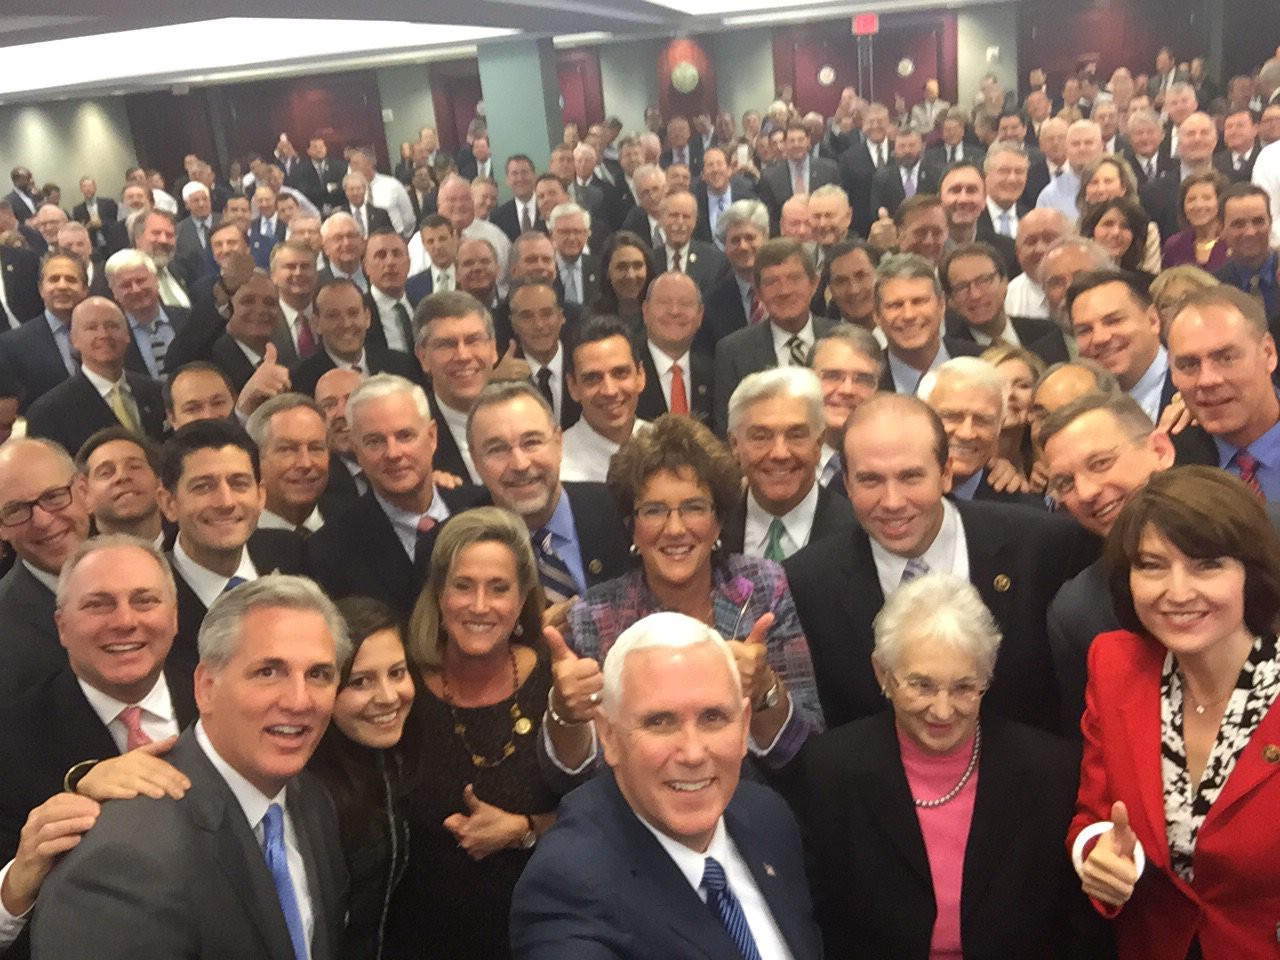 A selfie taken by Mike Pence with Republican members of Congress in 2016. Nearly every person in the picture is white.